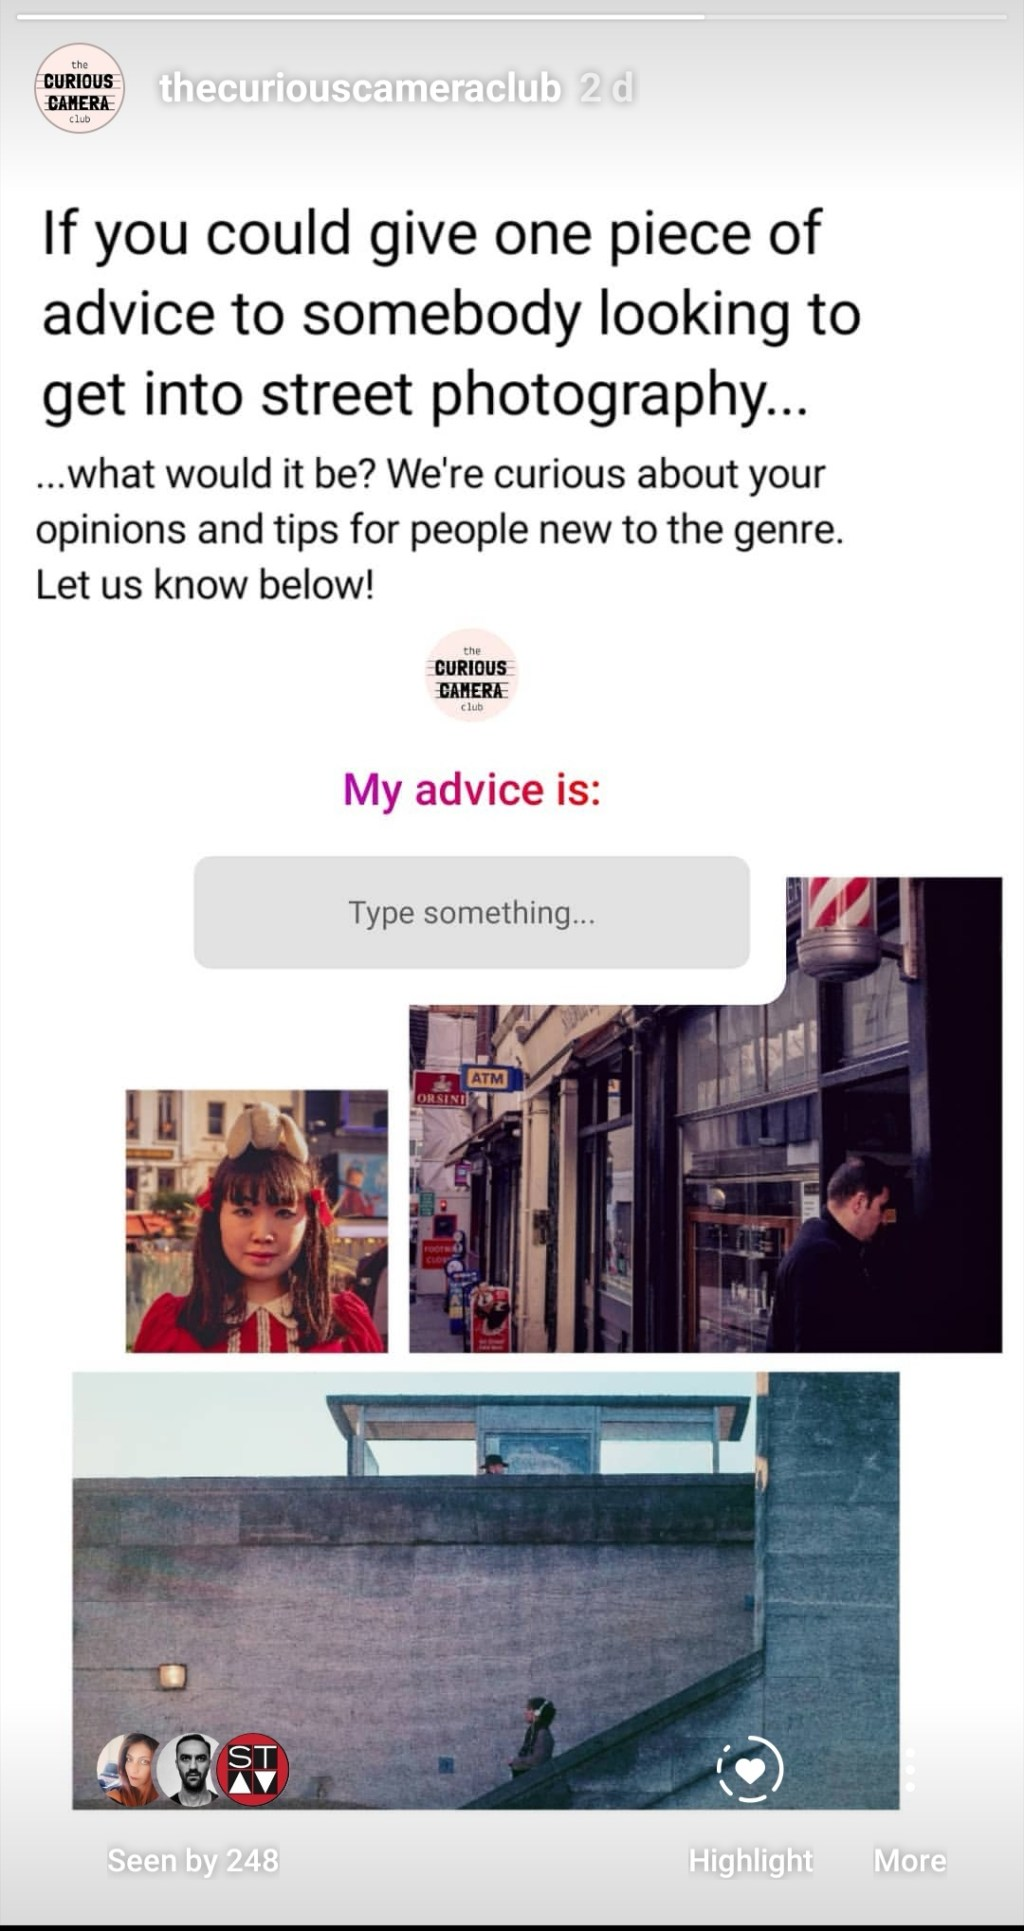 Question posted on Instagram story of The Curious Camera Club, asking followers for advice for people new to street photography